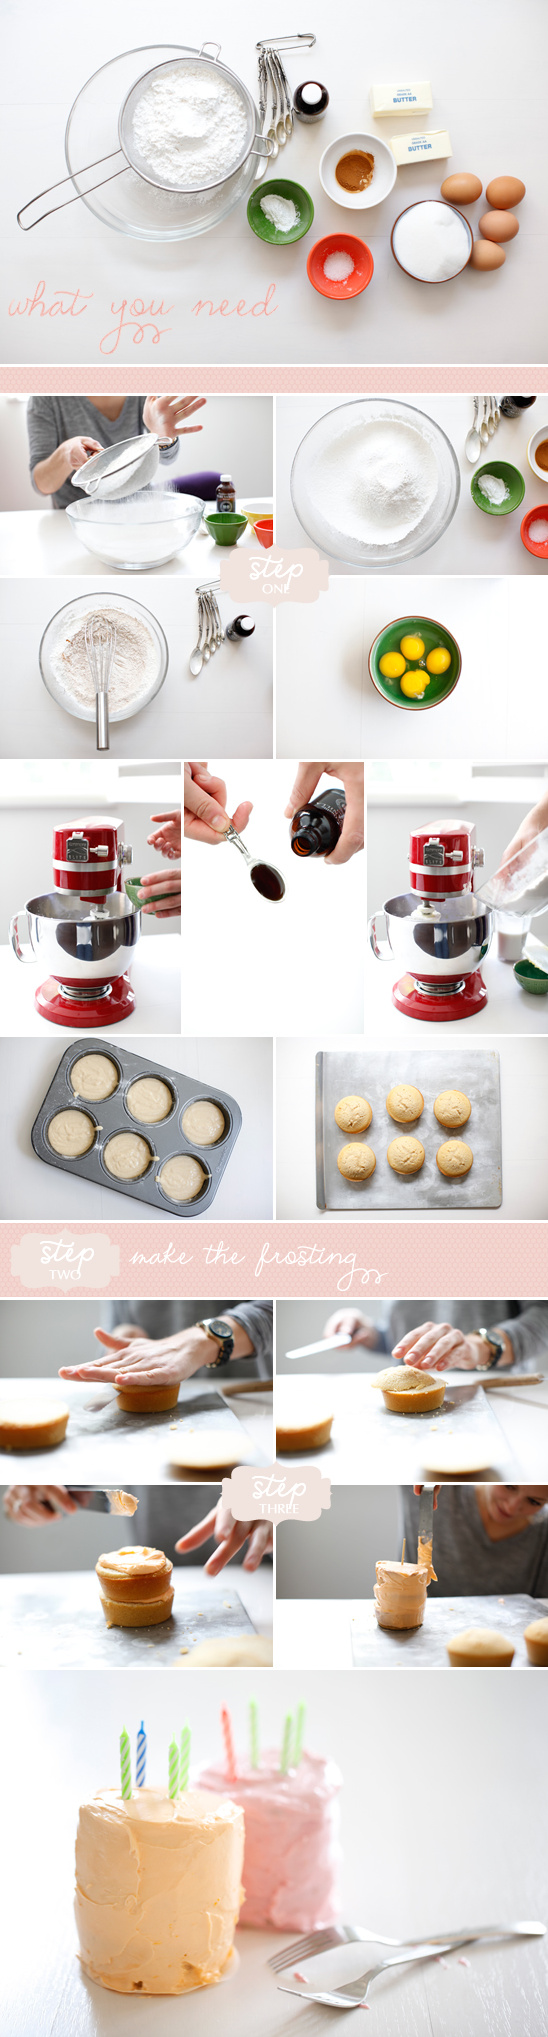 How To Make Mini Cakes